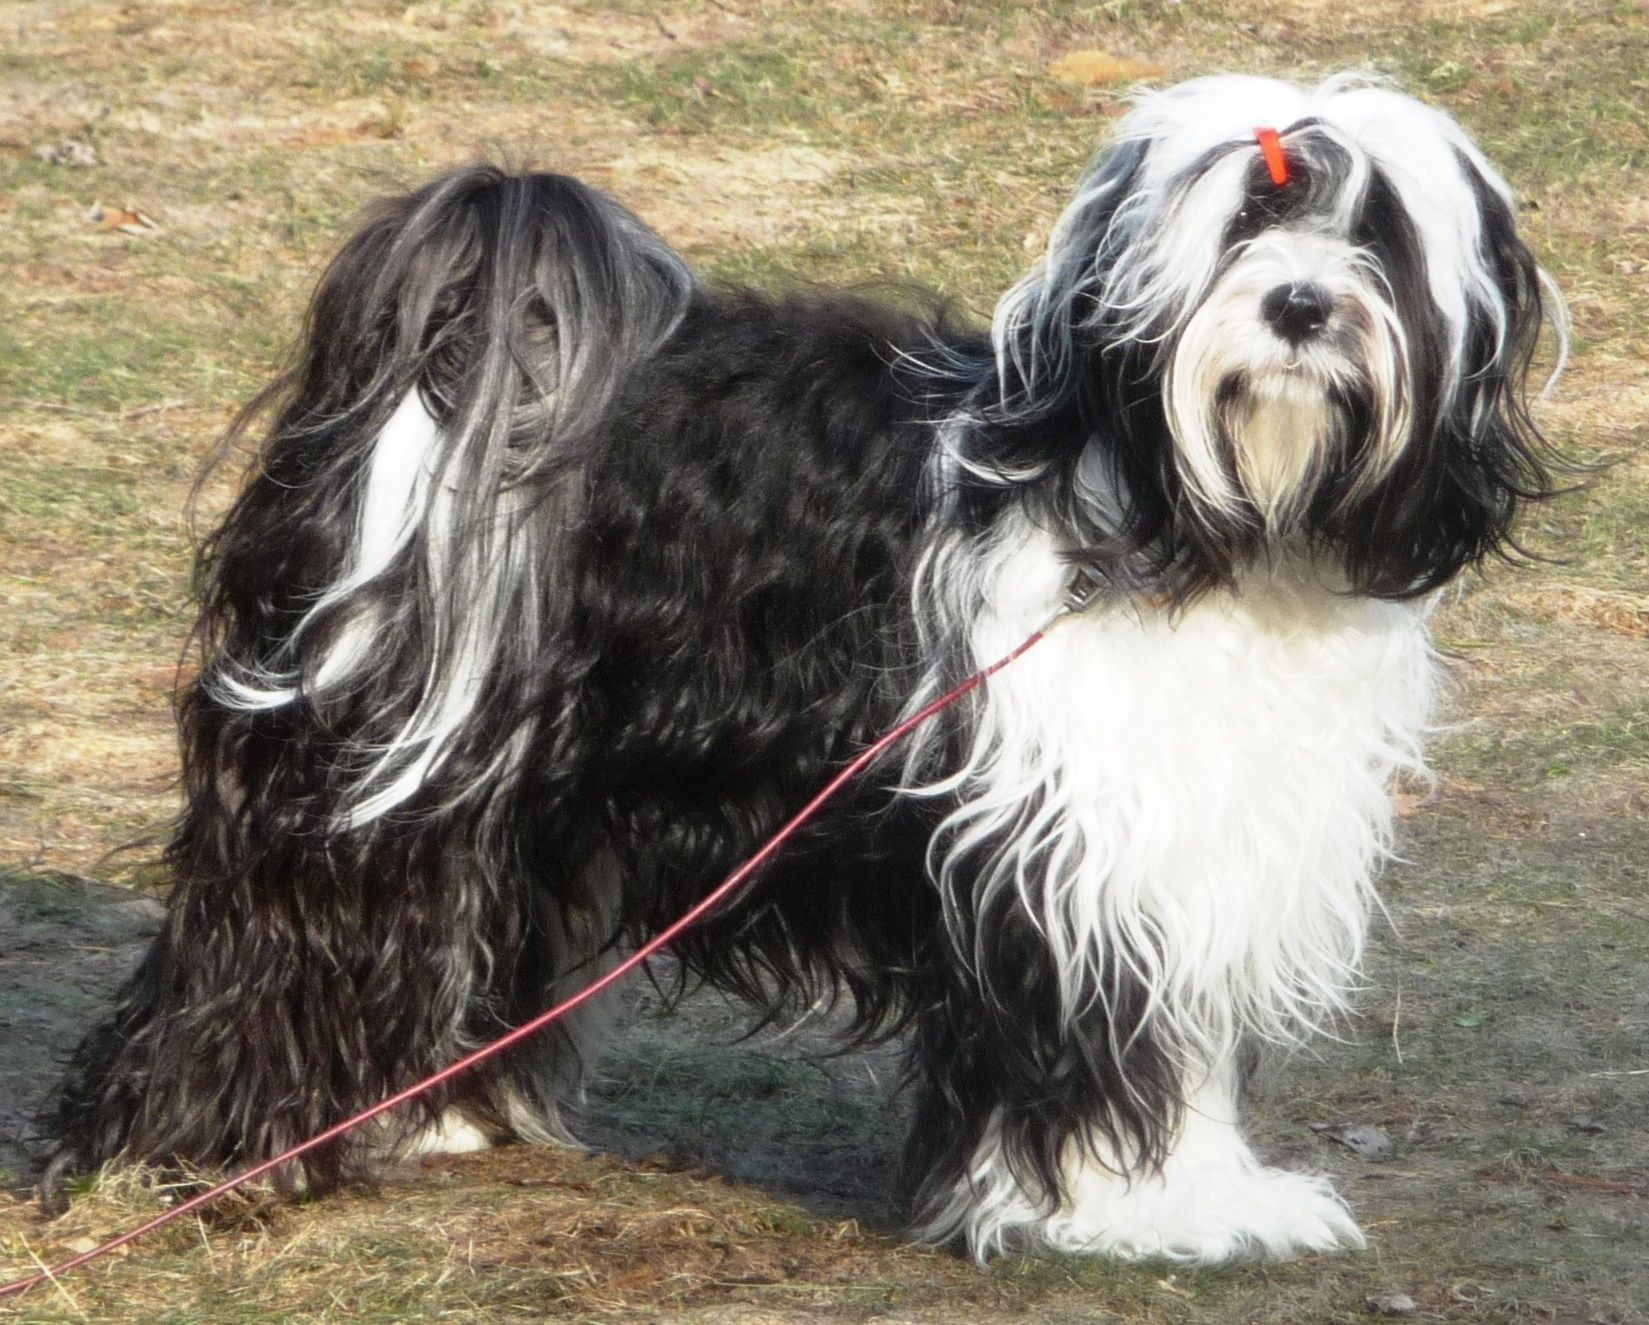 Daisy, a black and white Tibetan Terrier, almost 2 years